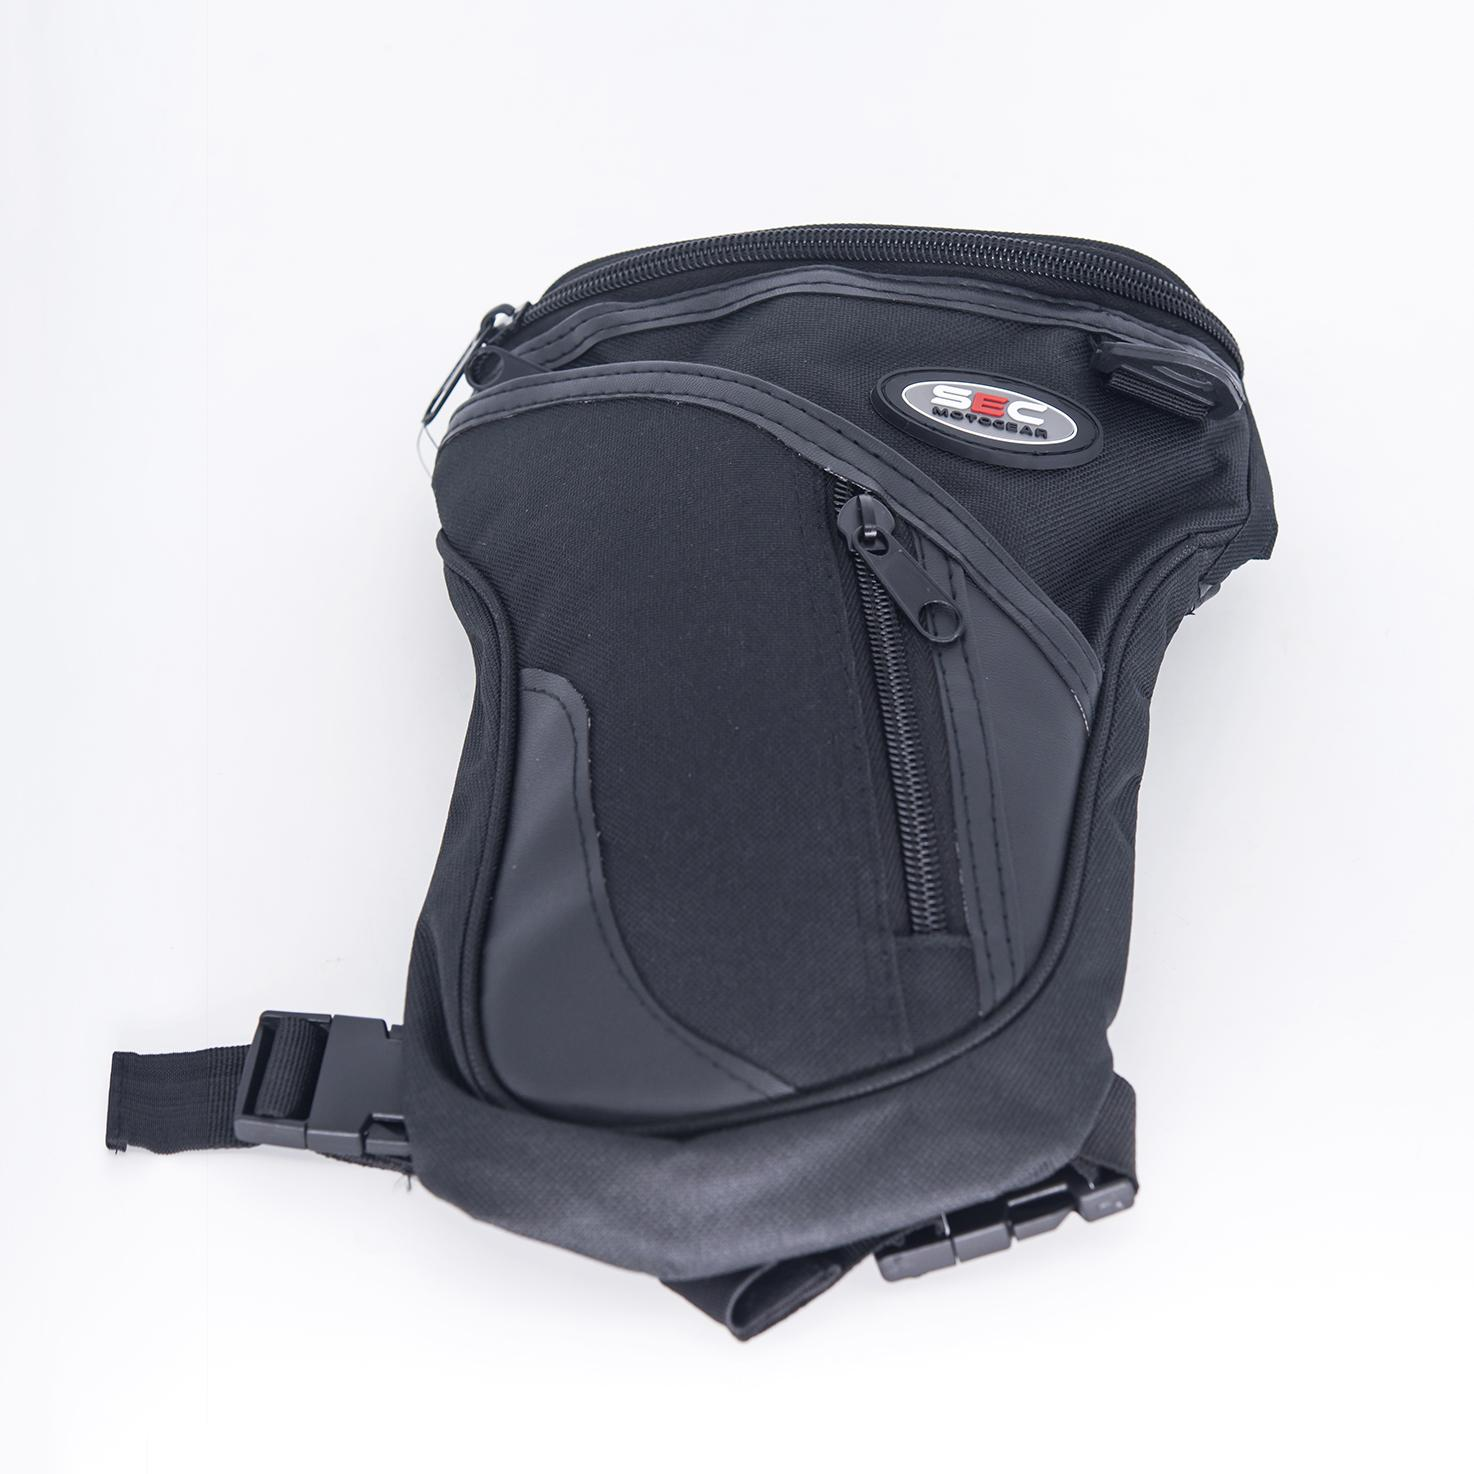 Motorcycle Luggage for sale - Motorcycle Saddlebags online brands ... ff4516ec9a626